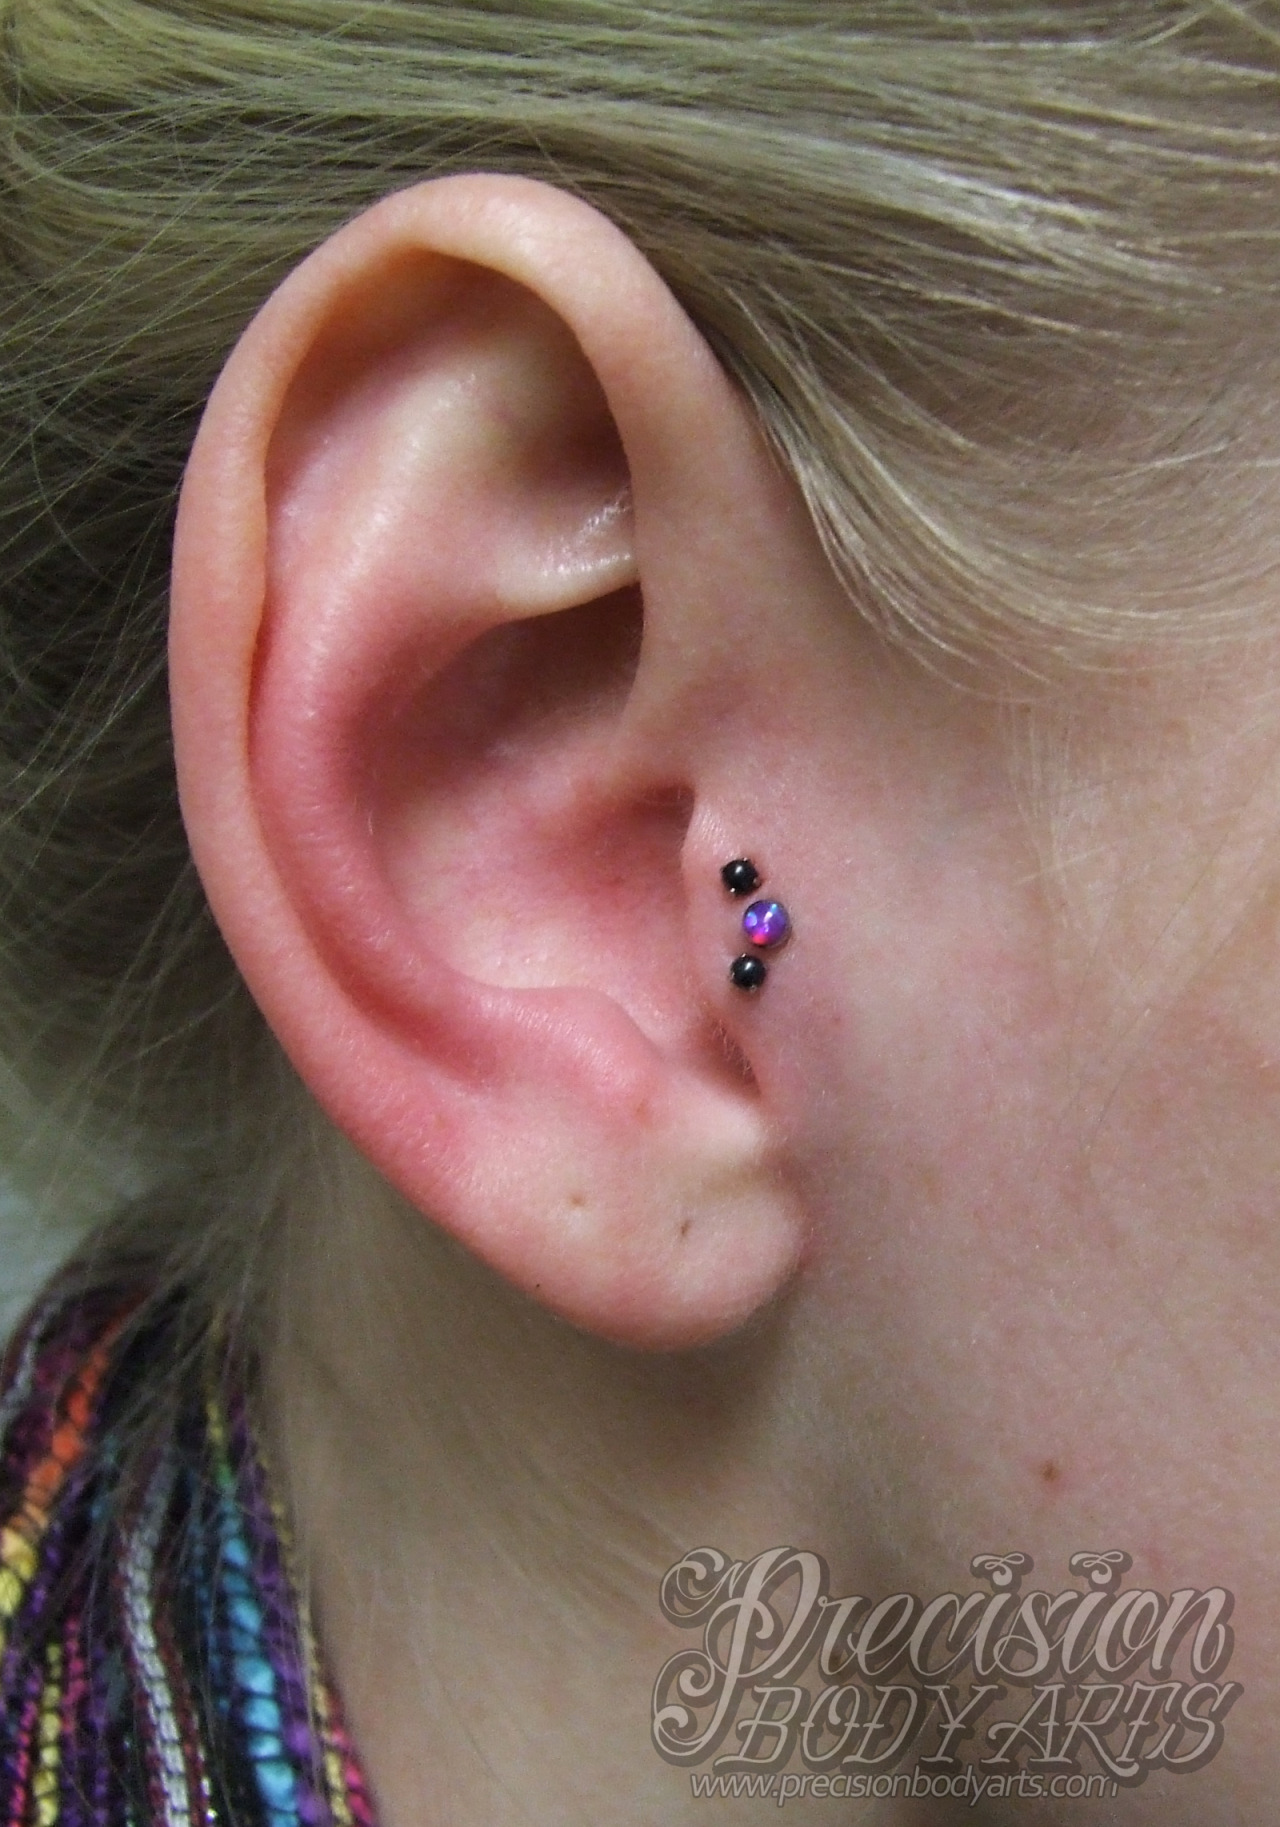 Triple tragus piercing by Ryan Ouellette. Precision Body Arts in Nashua, New Hampshire. Jewelry by Neometal.